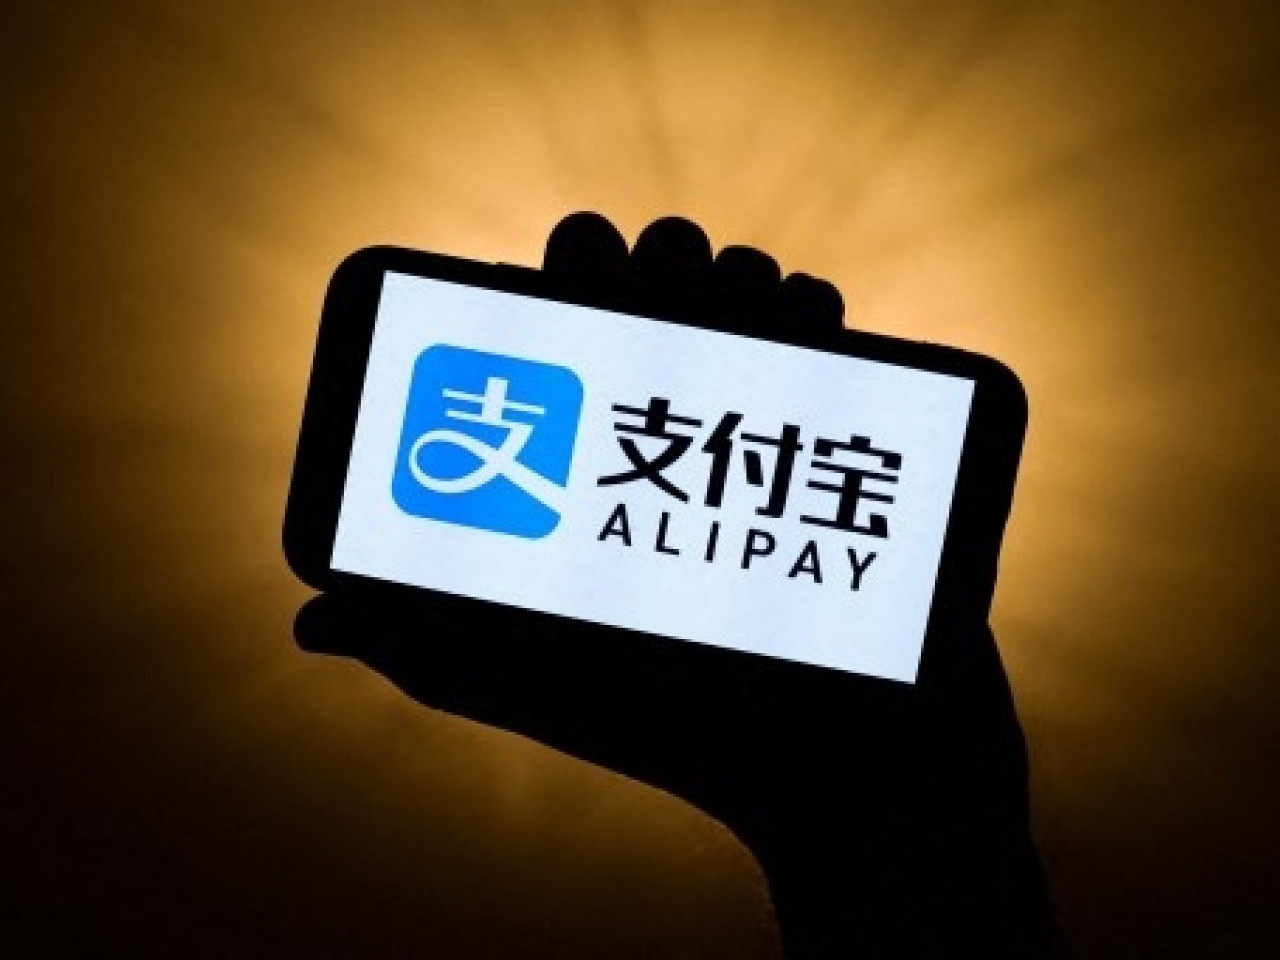 Alipay has more than one billion users in China and other Asian nations. File photo: AFP